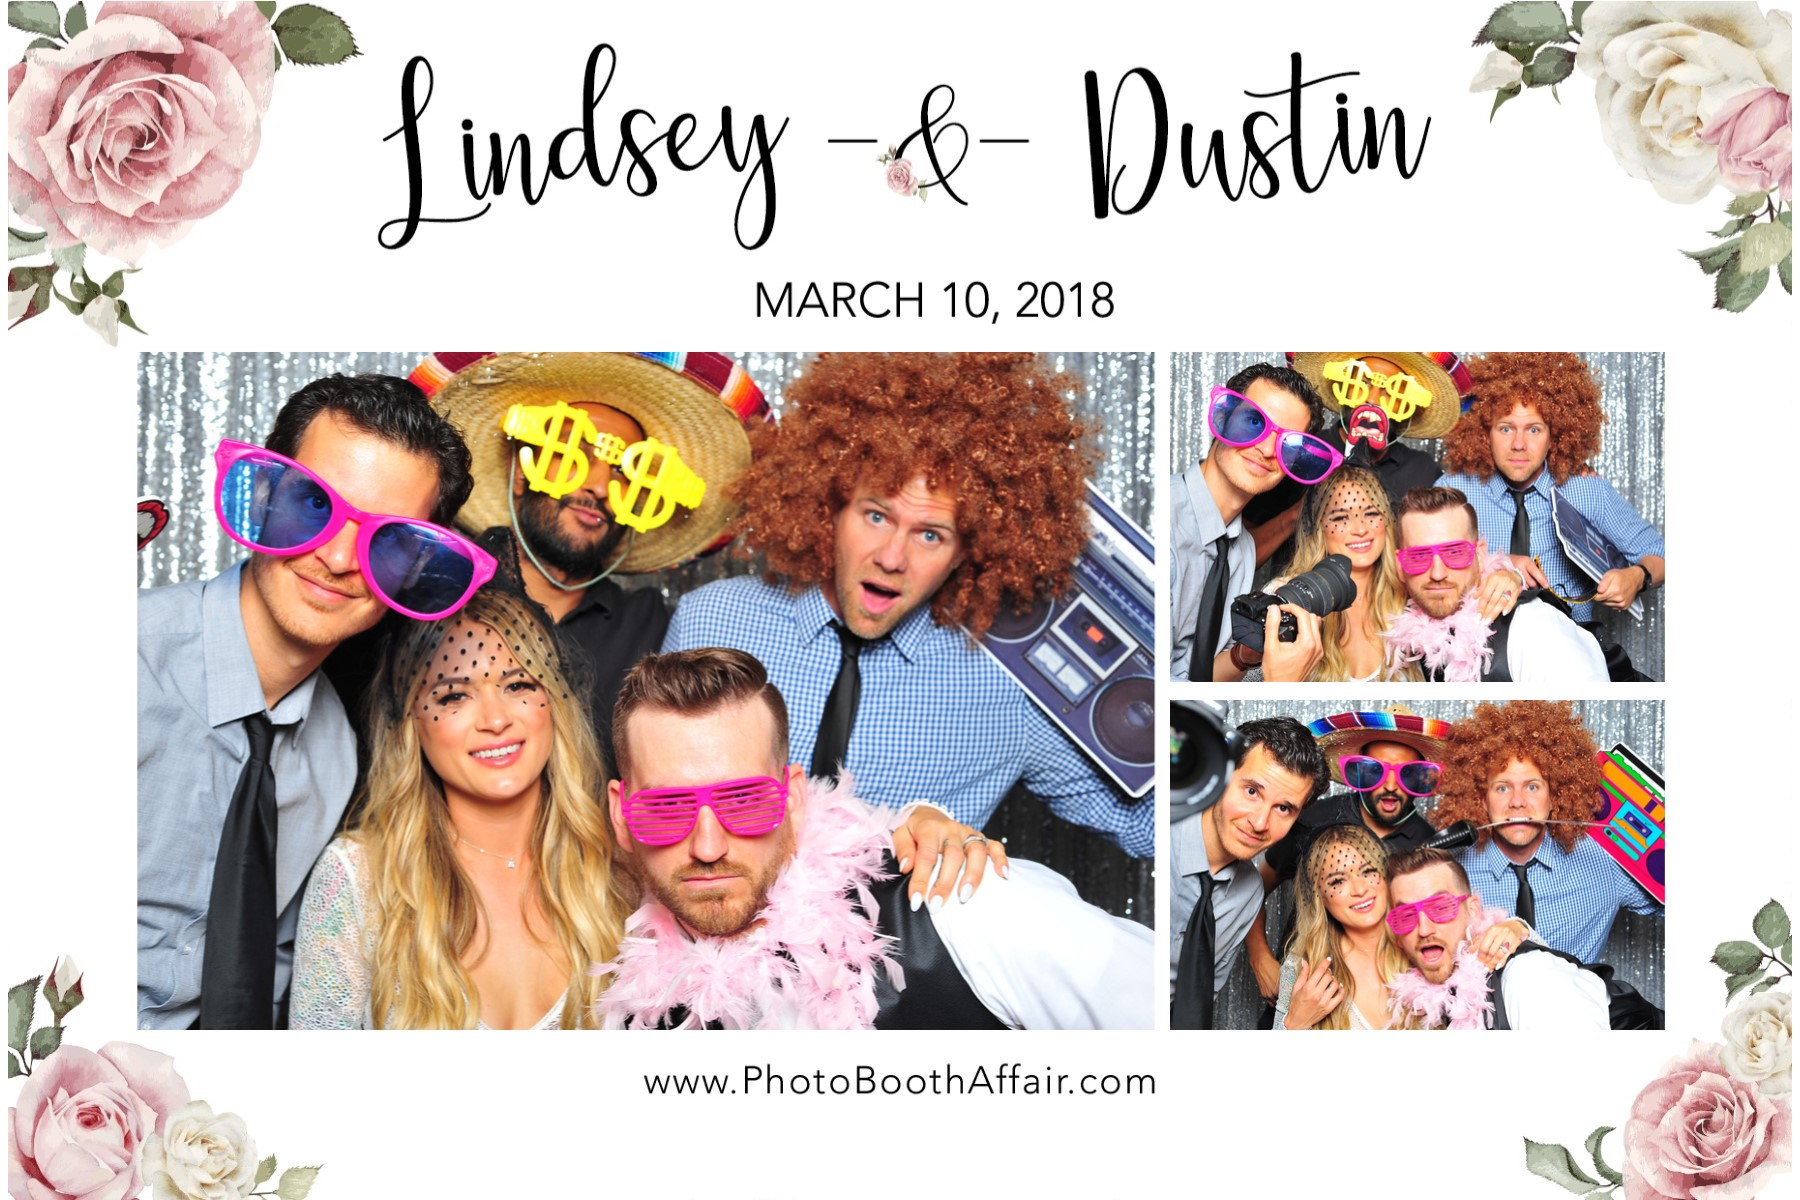 Dustin + Lindsey - Prints - Photo Booth Affair 30